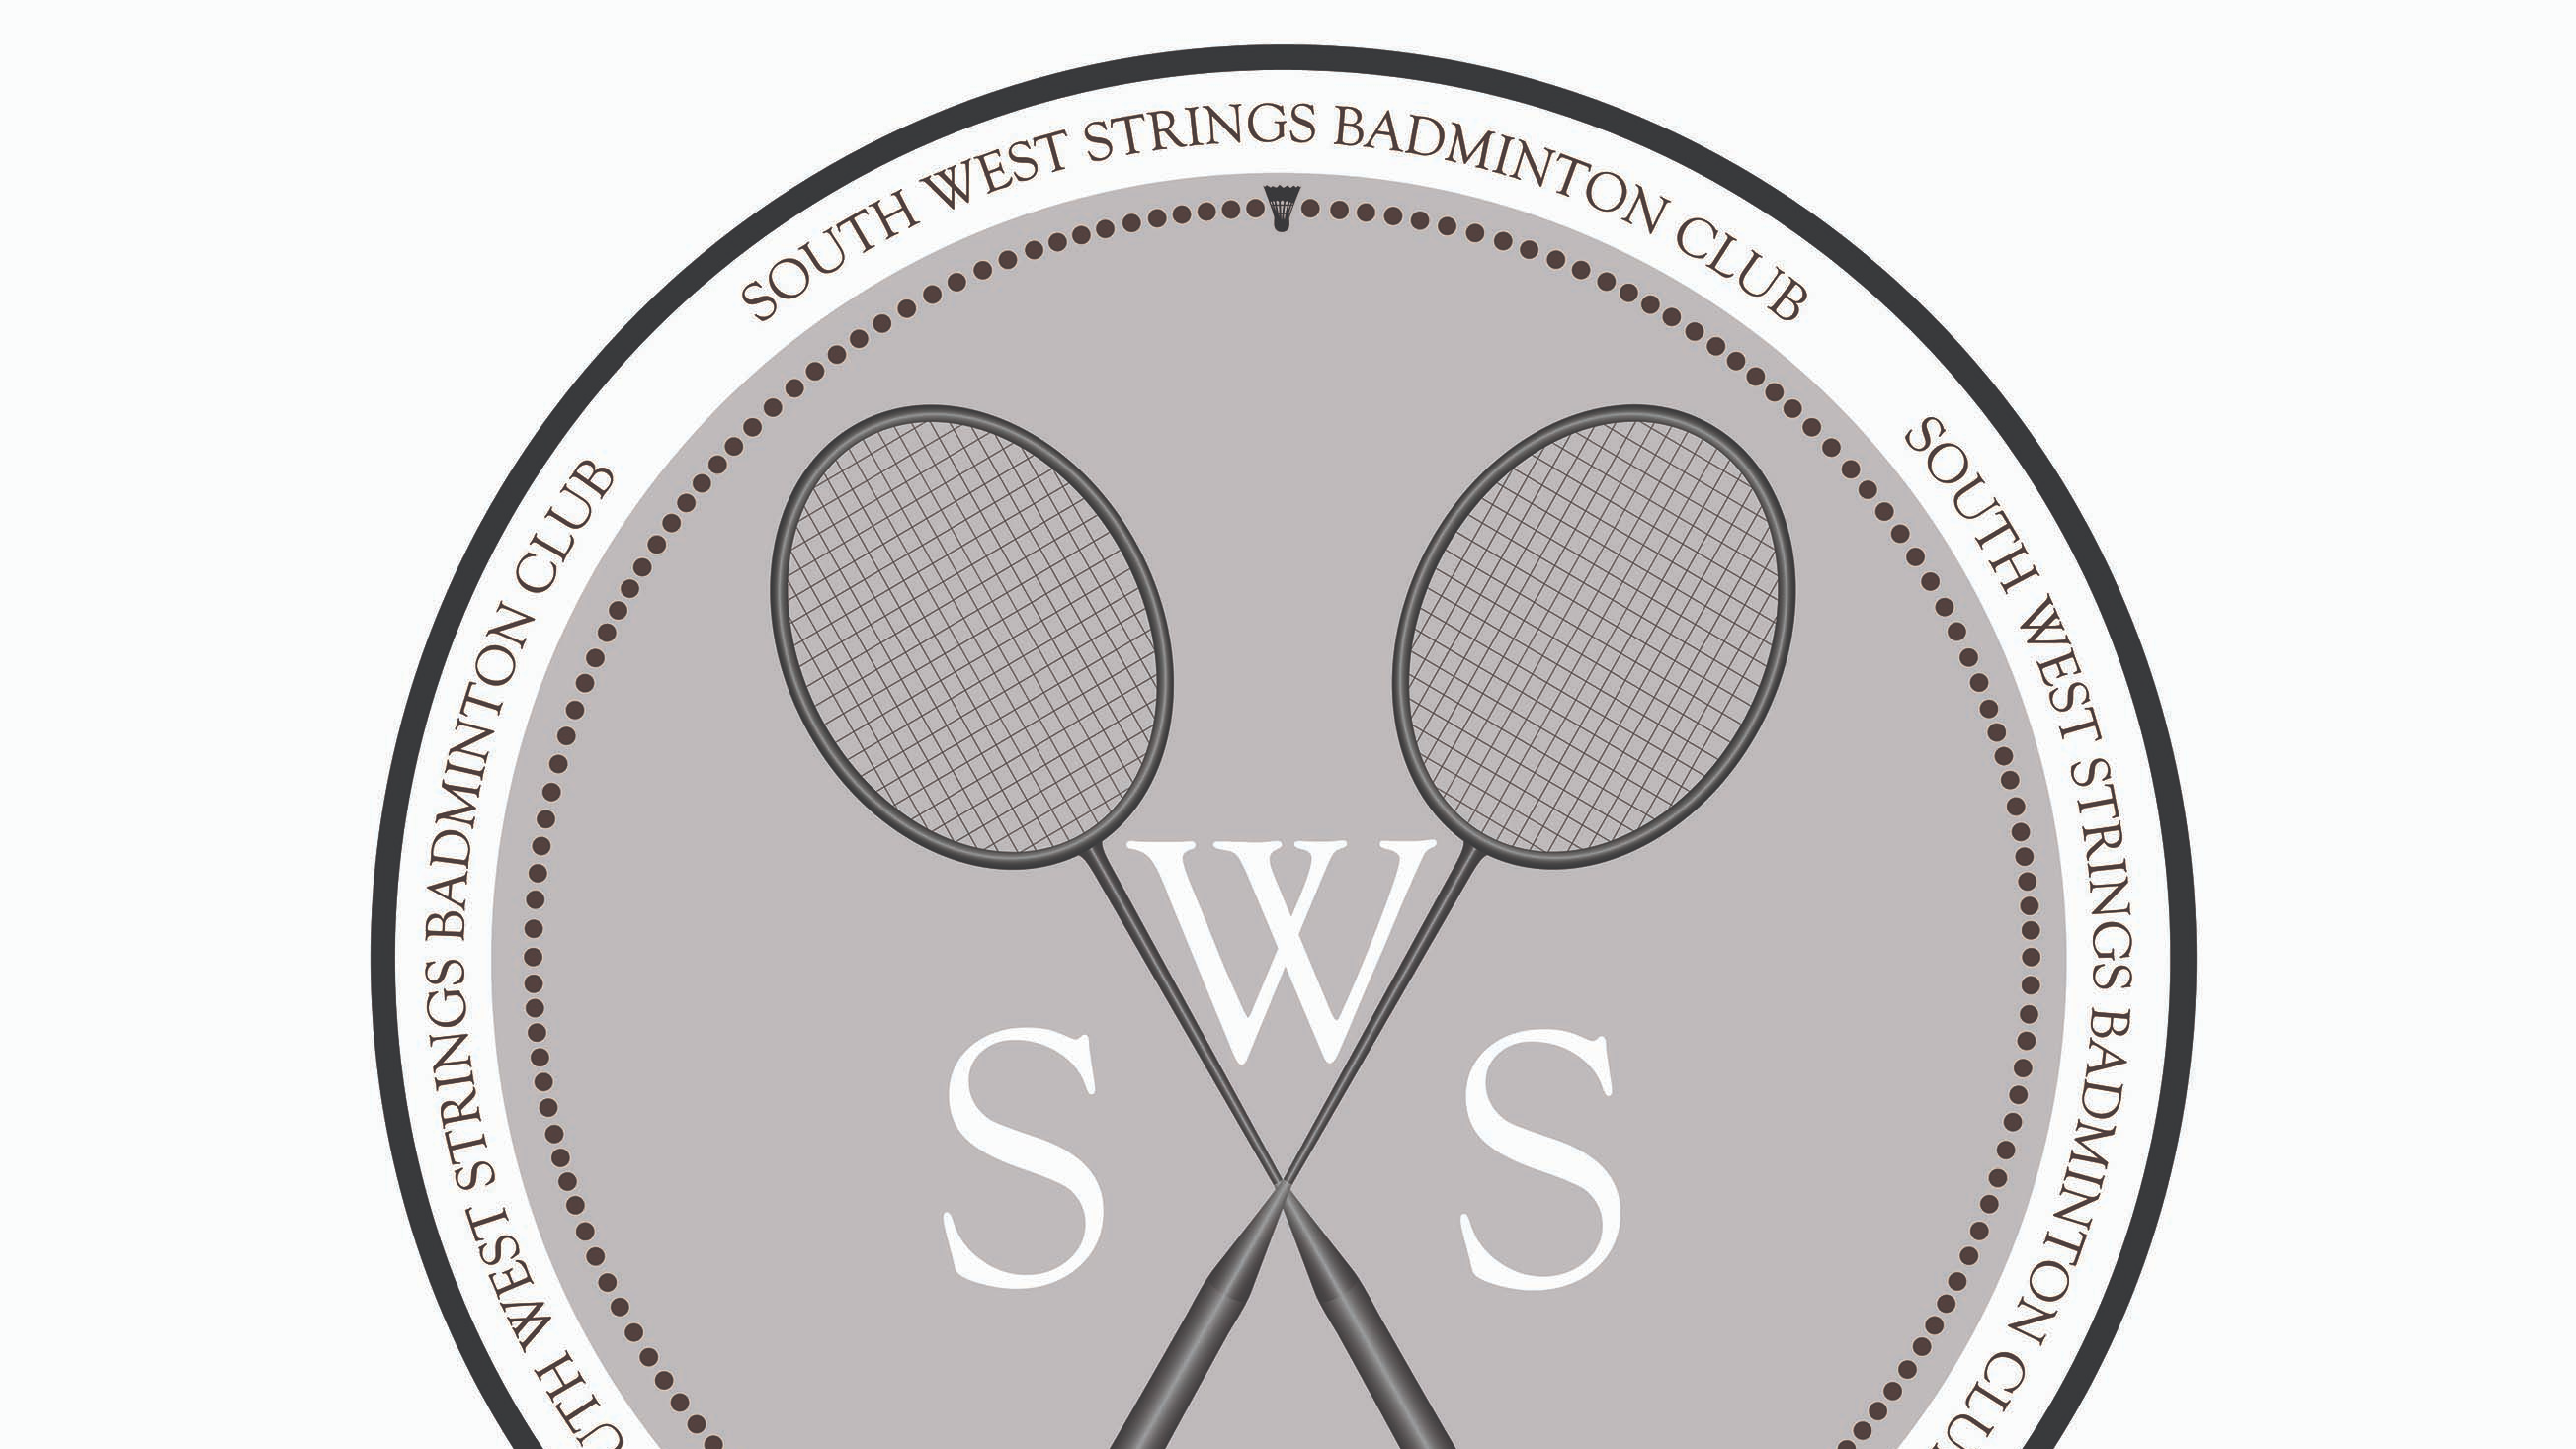 South West Strings Badminton Club